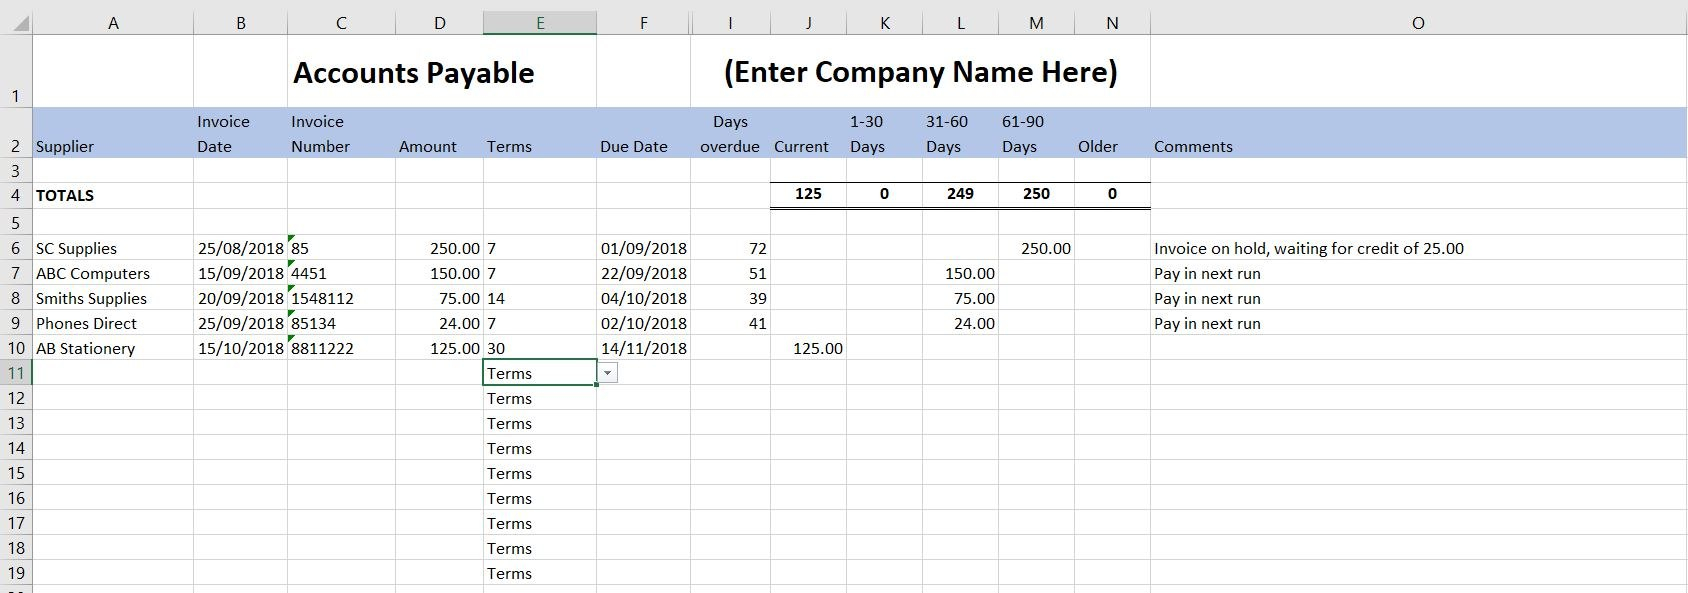 Free Excel Bookkeeping Templates   Accounts Spreadsheets With Small Business Accounting Spreadsheet Template Free